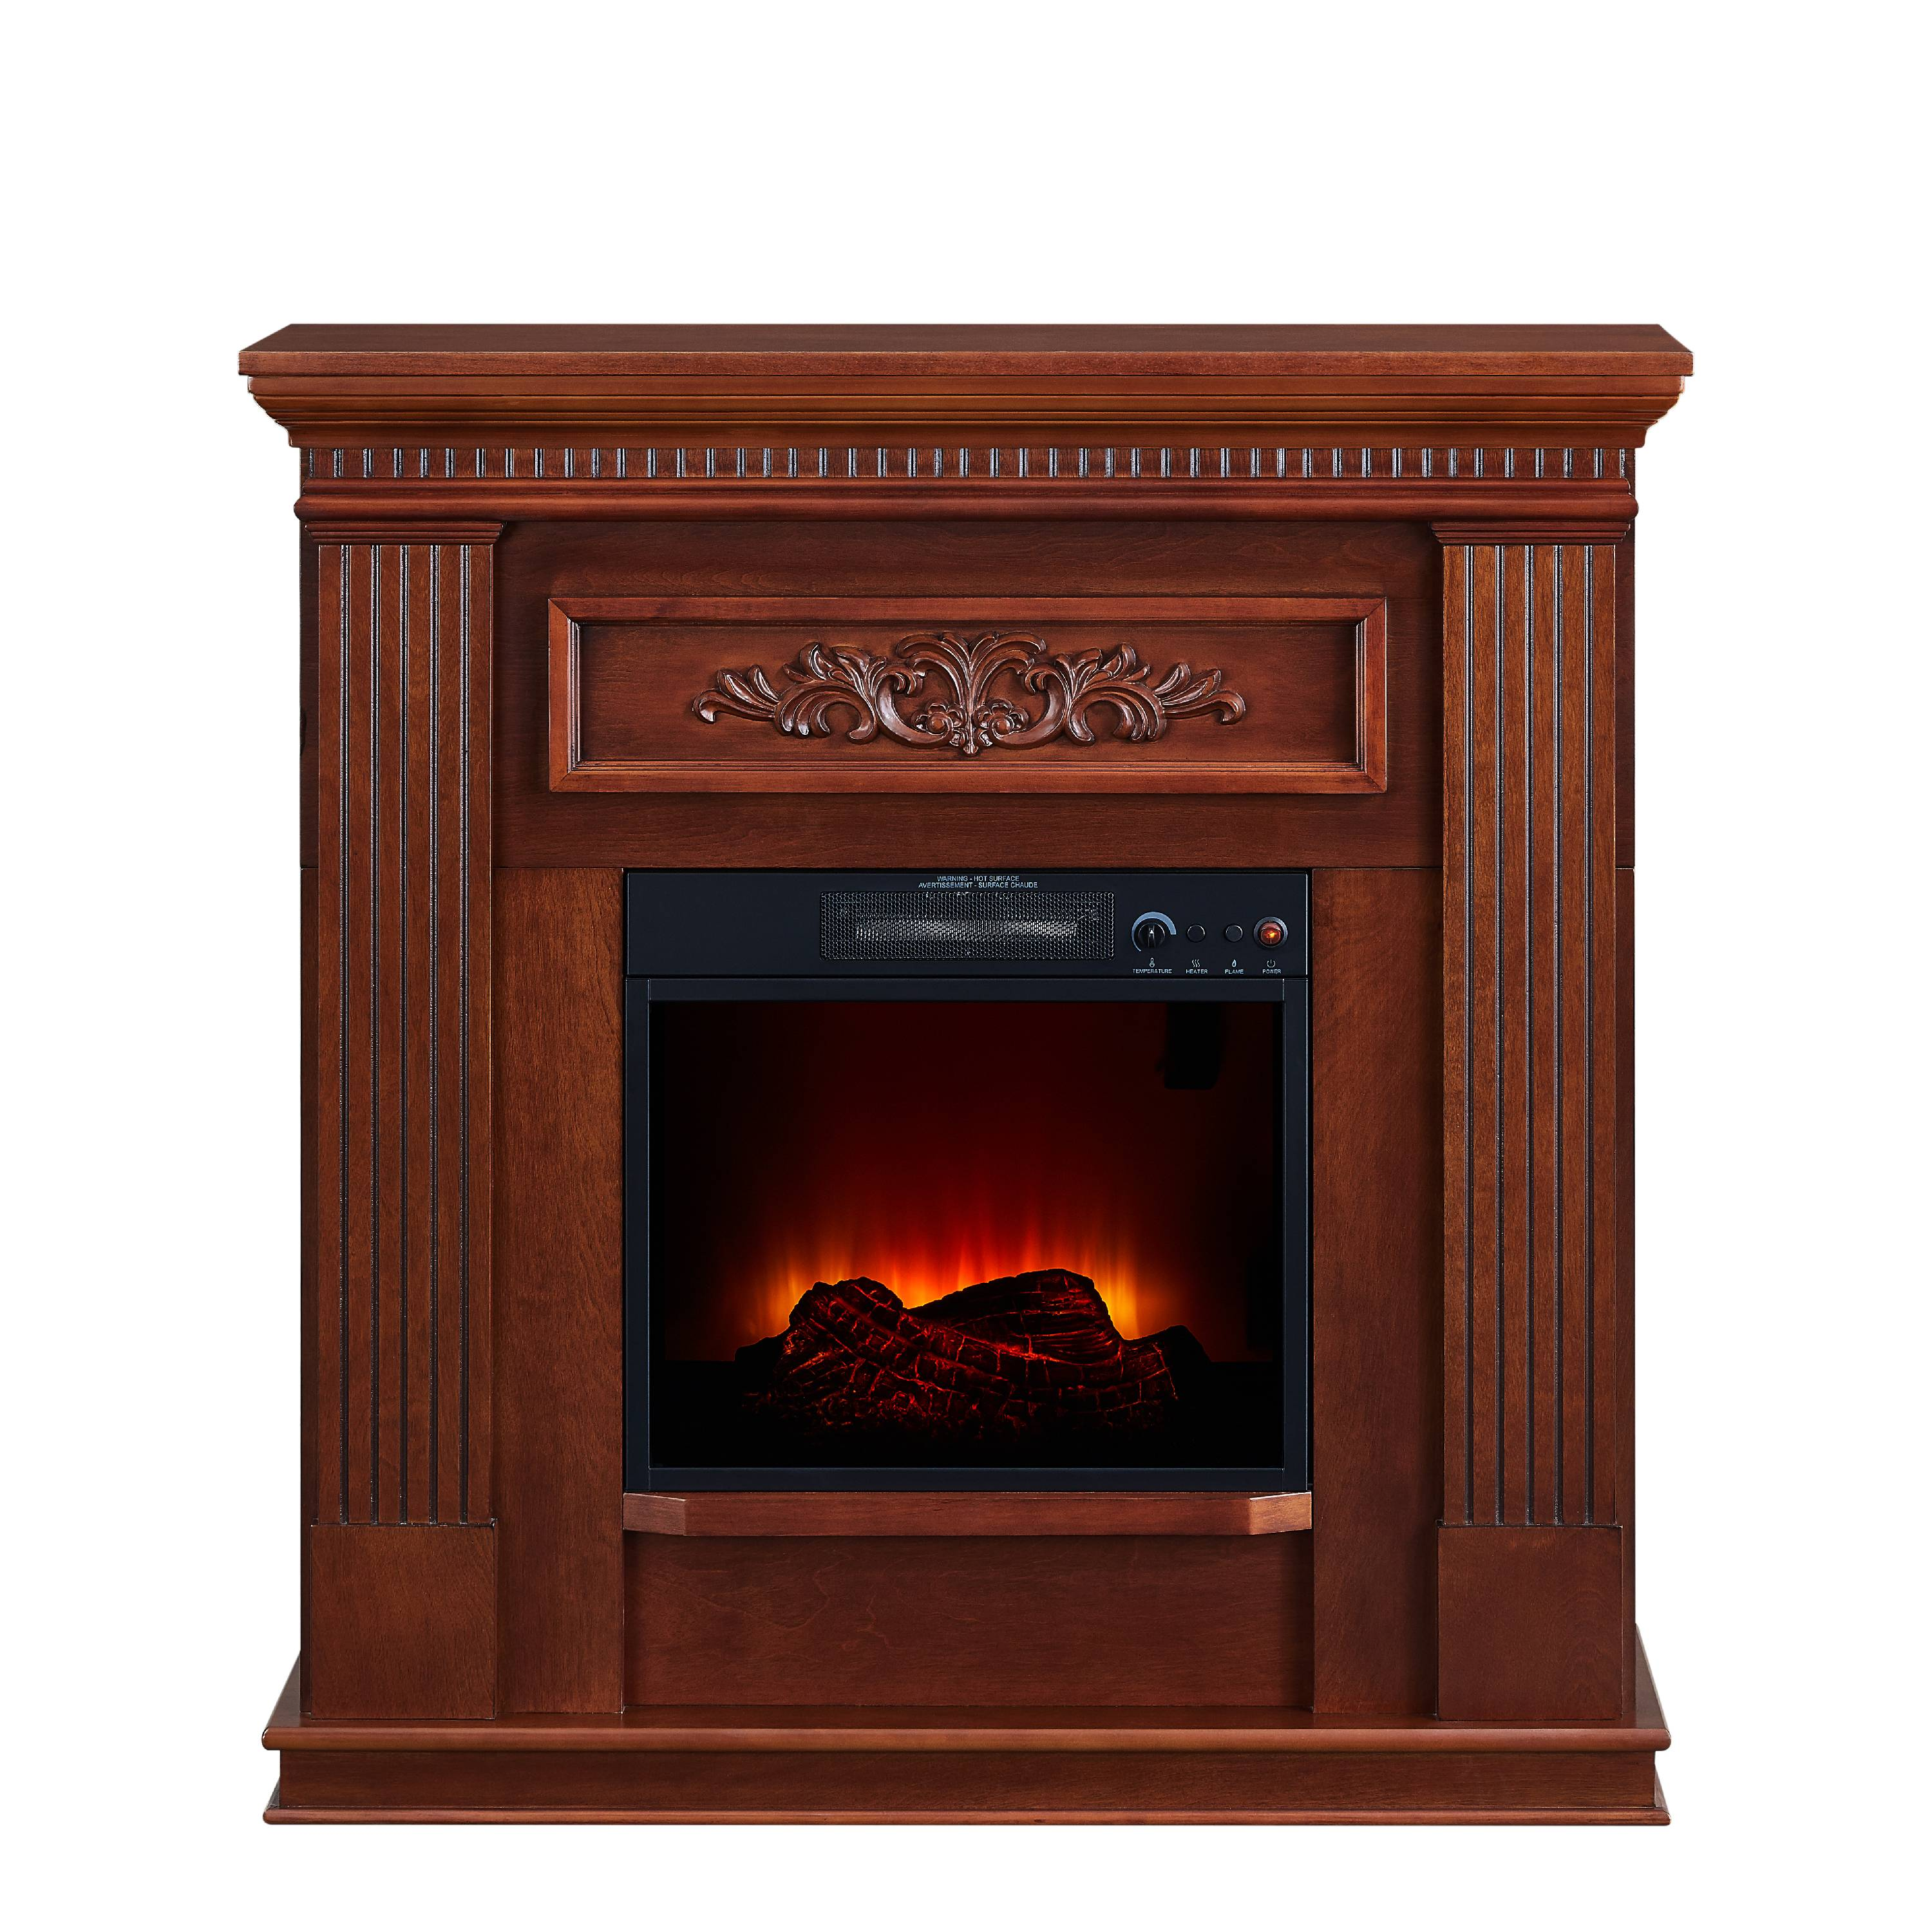 Pleasing Bold Flame 38 Inch Wall Corner Electric Fireplace In Dark Download Free Architecture Designs Xerocsunscenecom